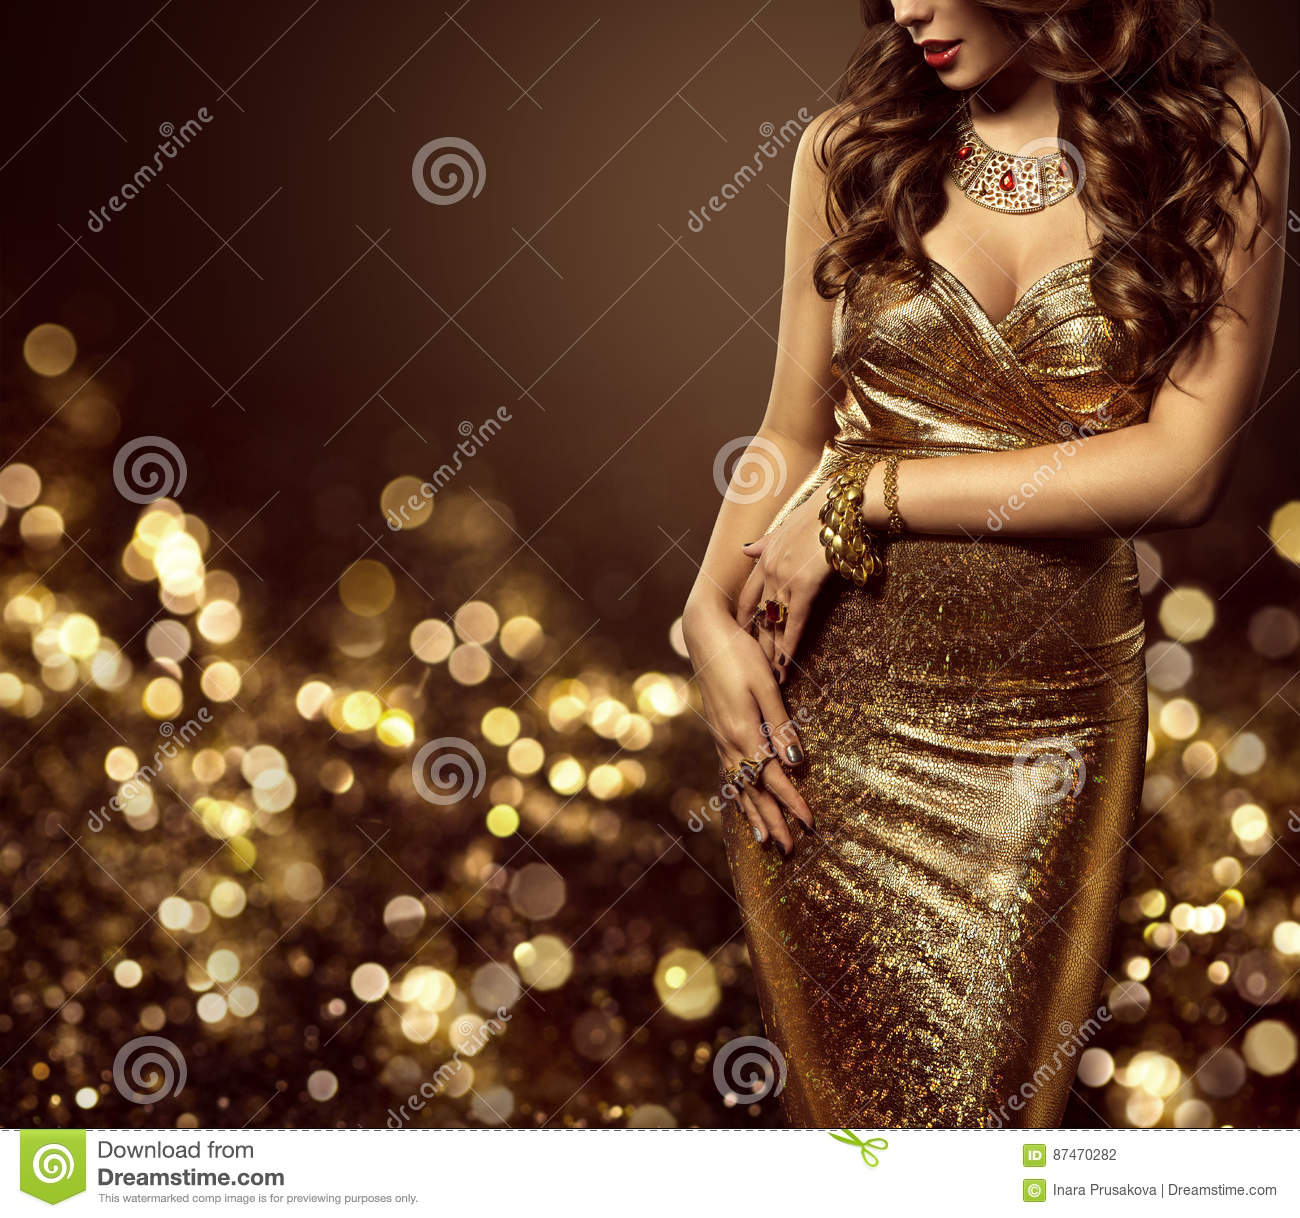 Mode-Modell Body im Goldkleid, Frauen-elegantes goldenes Kleid